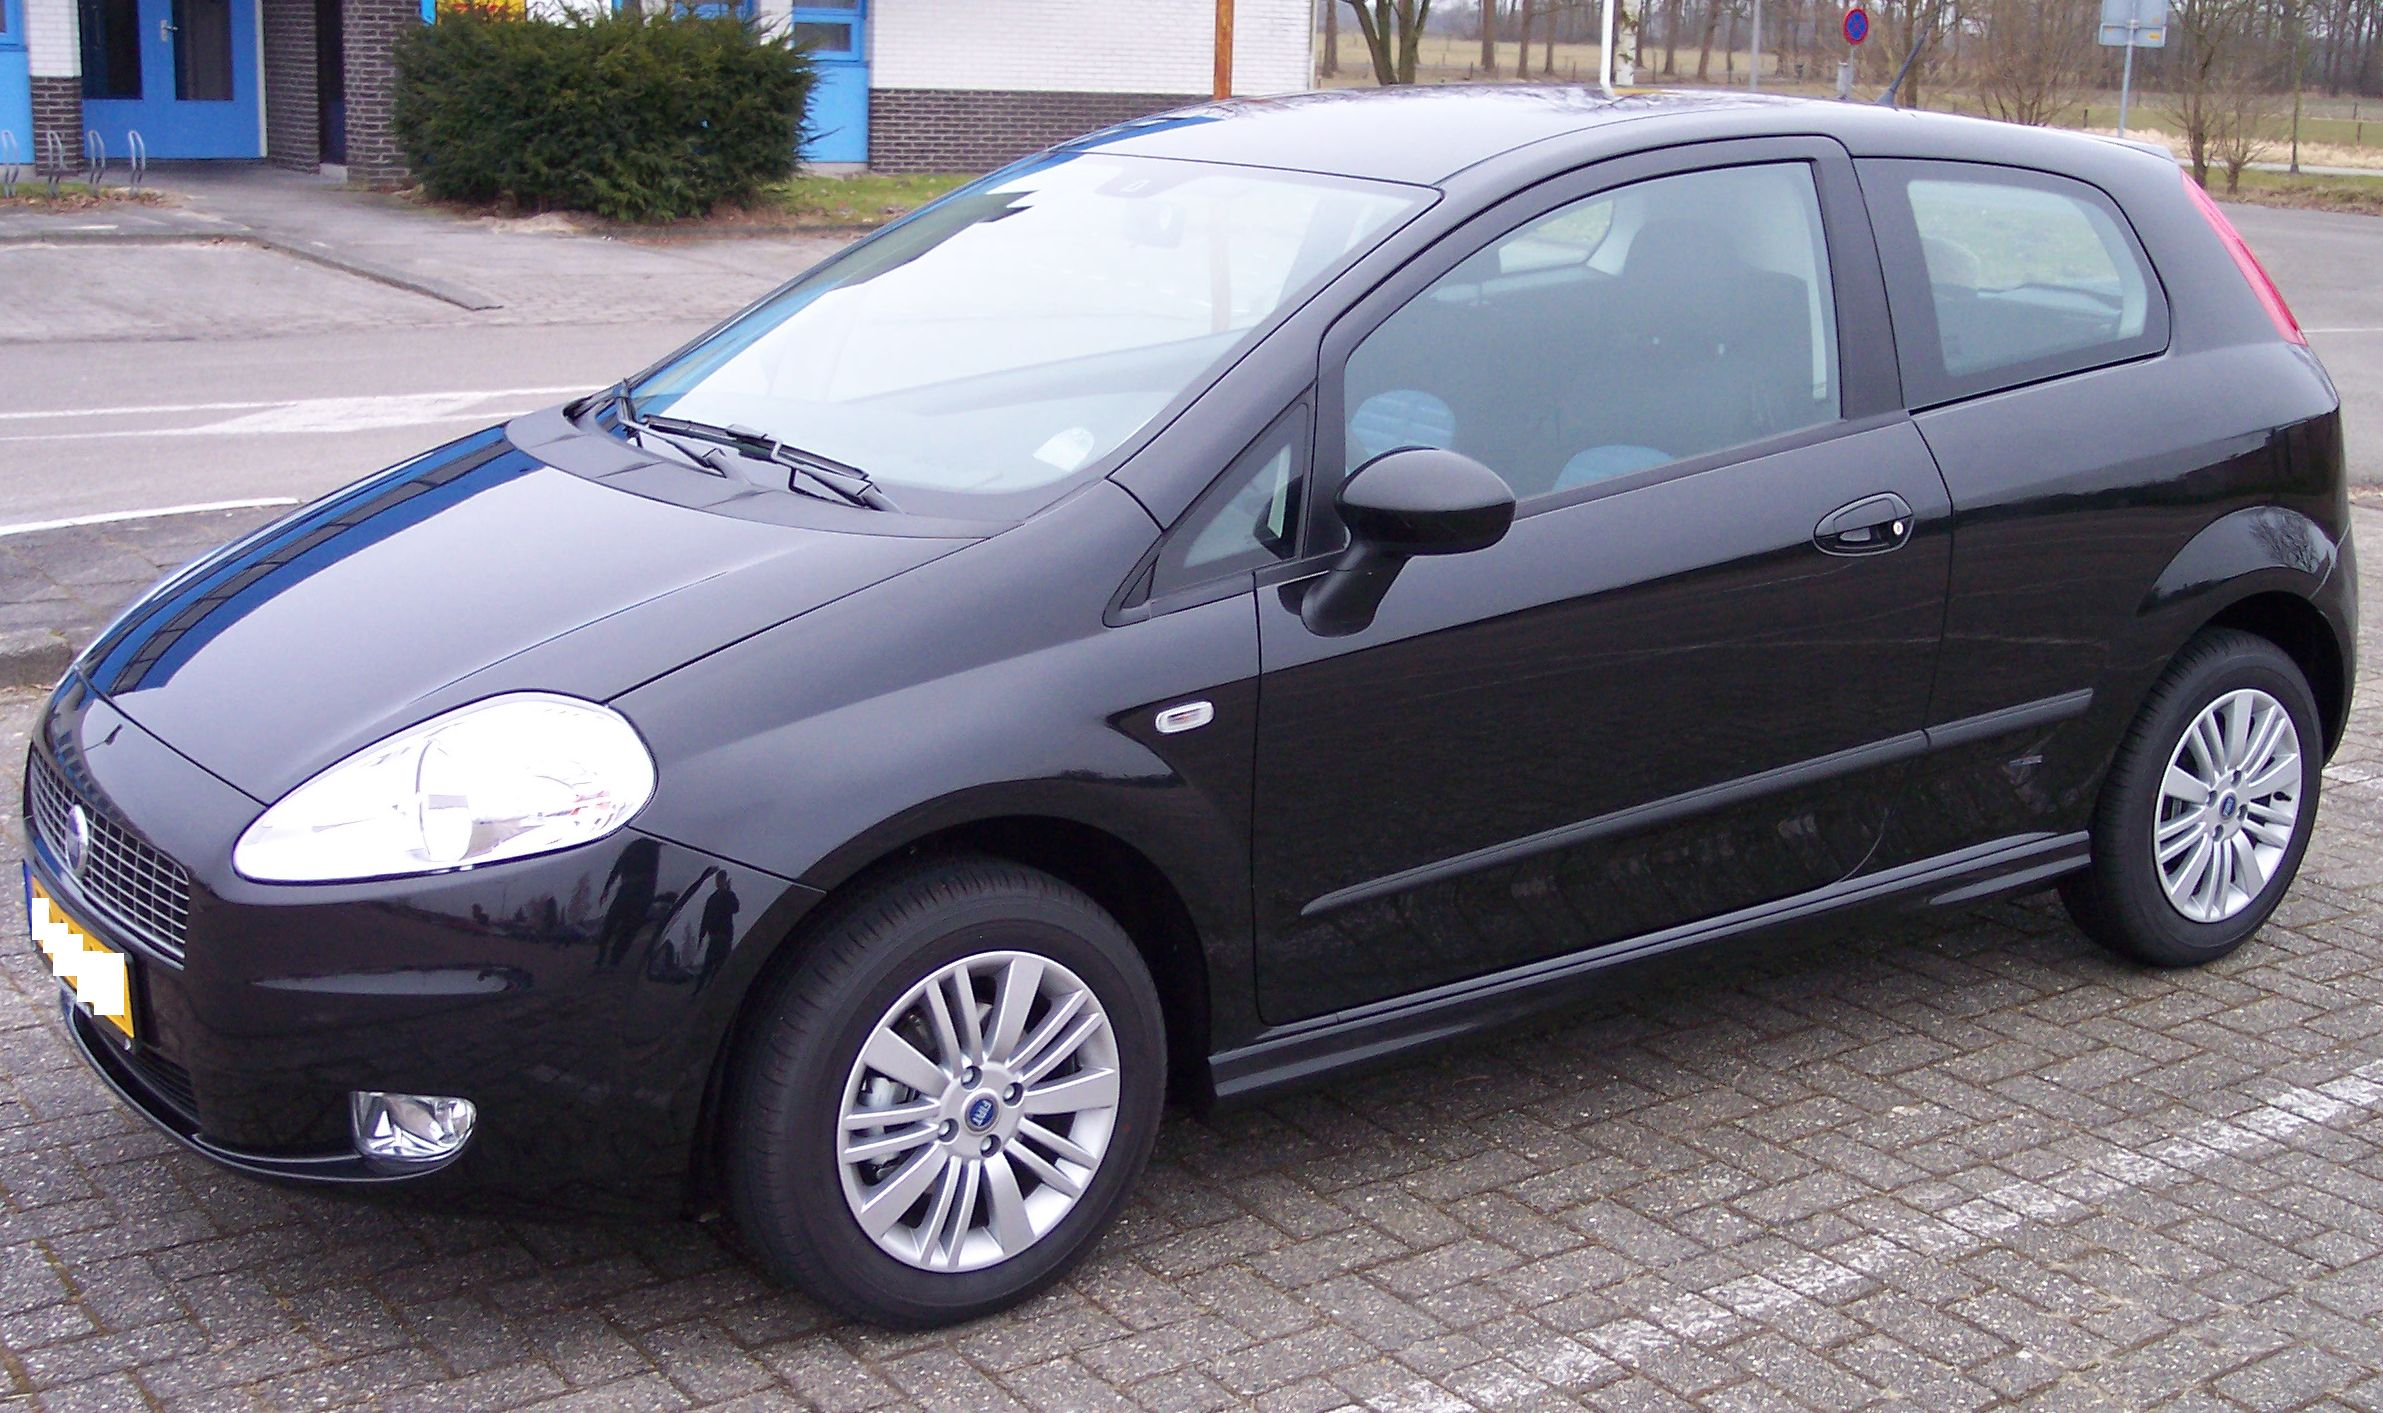 file fiat punto 2006 vl wikimedia commons. Black Bedroom Furniture Sets. Home Design Ideas